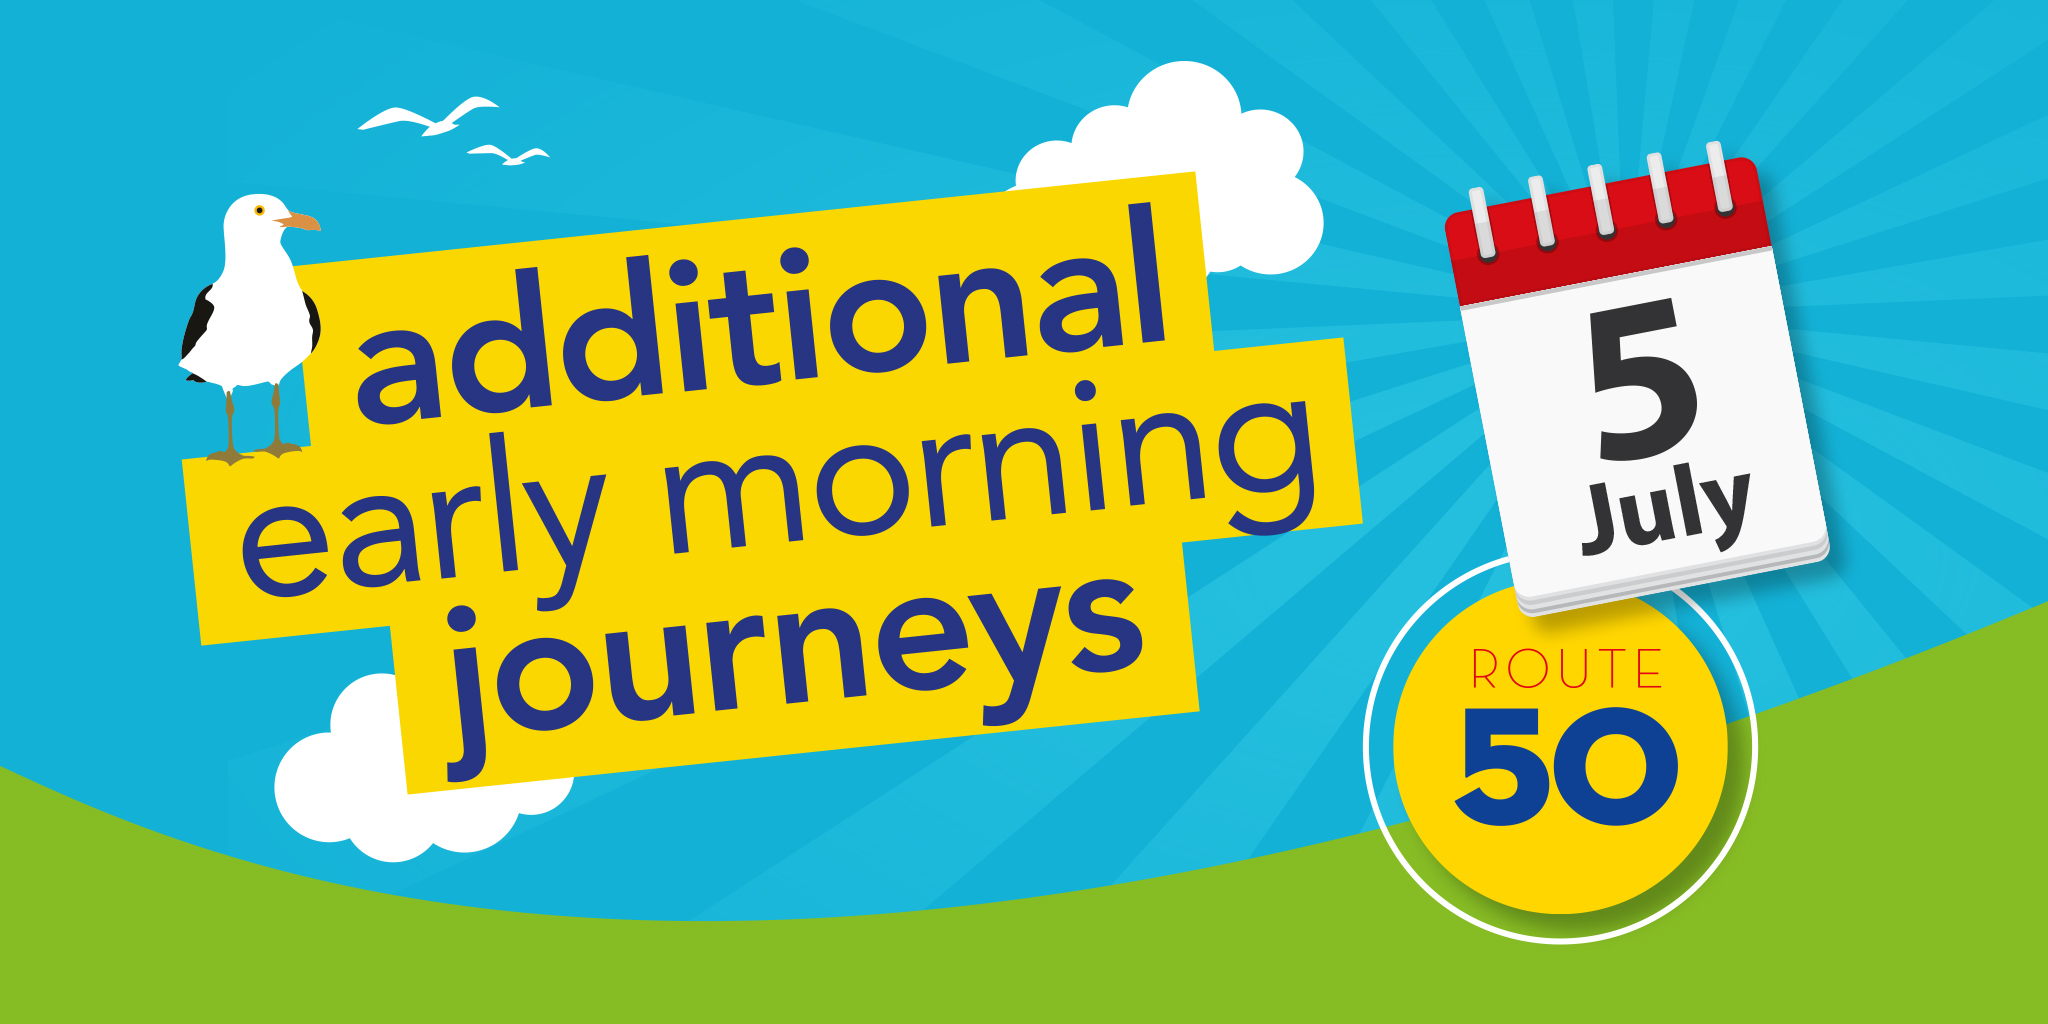 Image reading 'Additional early morning journeys Purbeck Breezer 50 from 5th July'